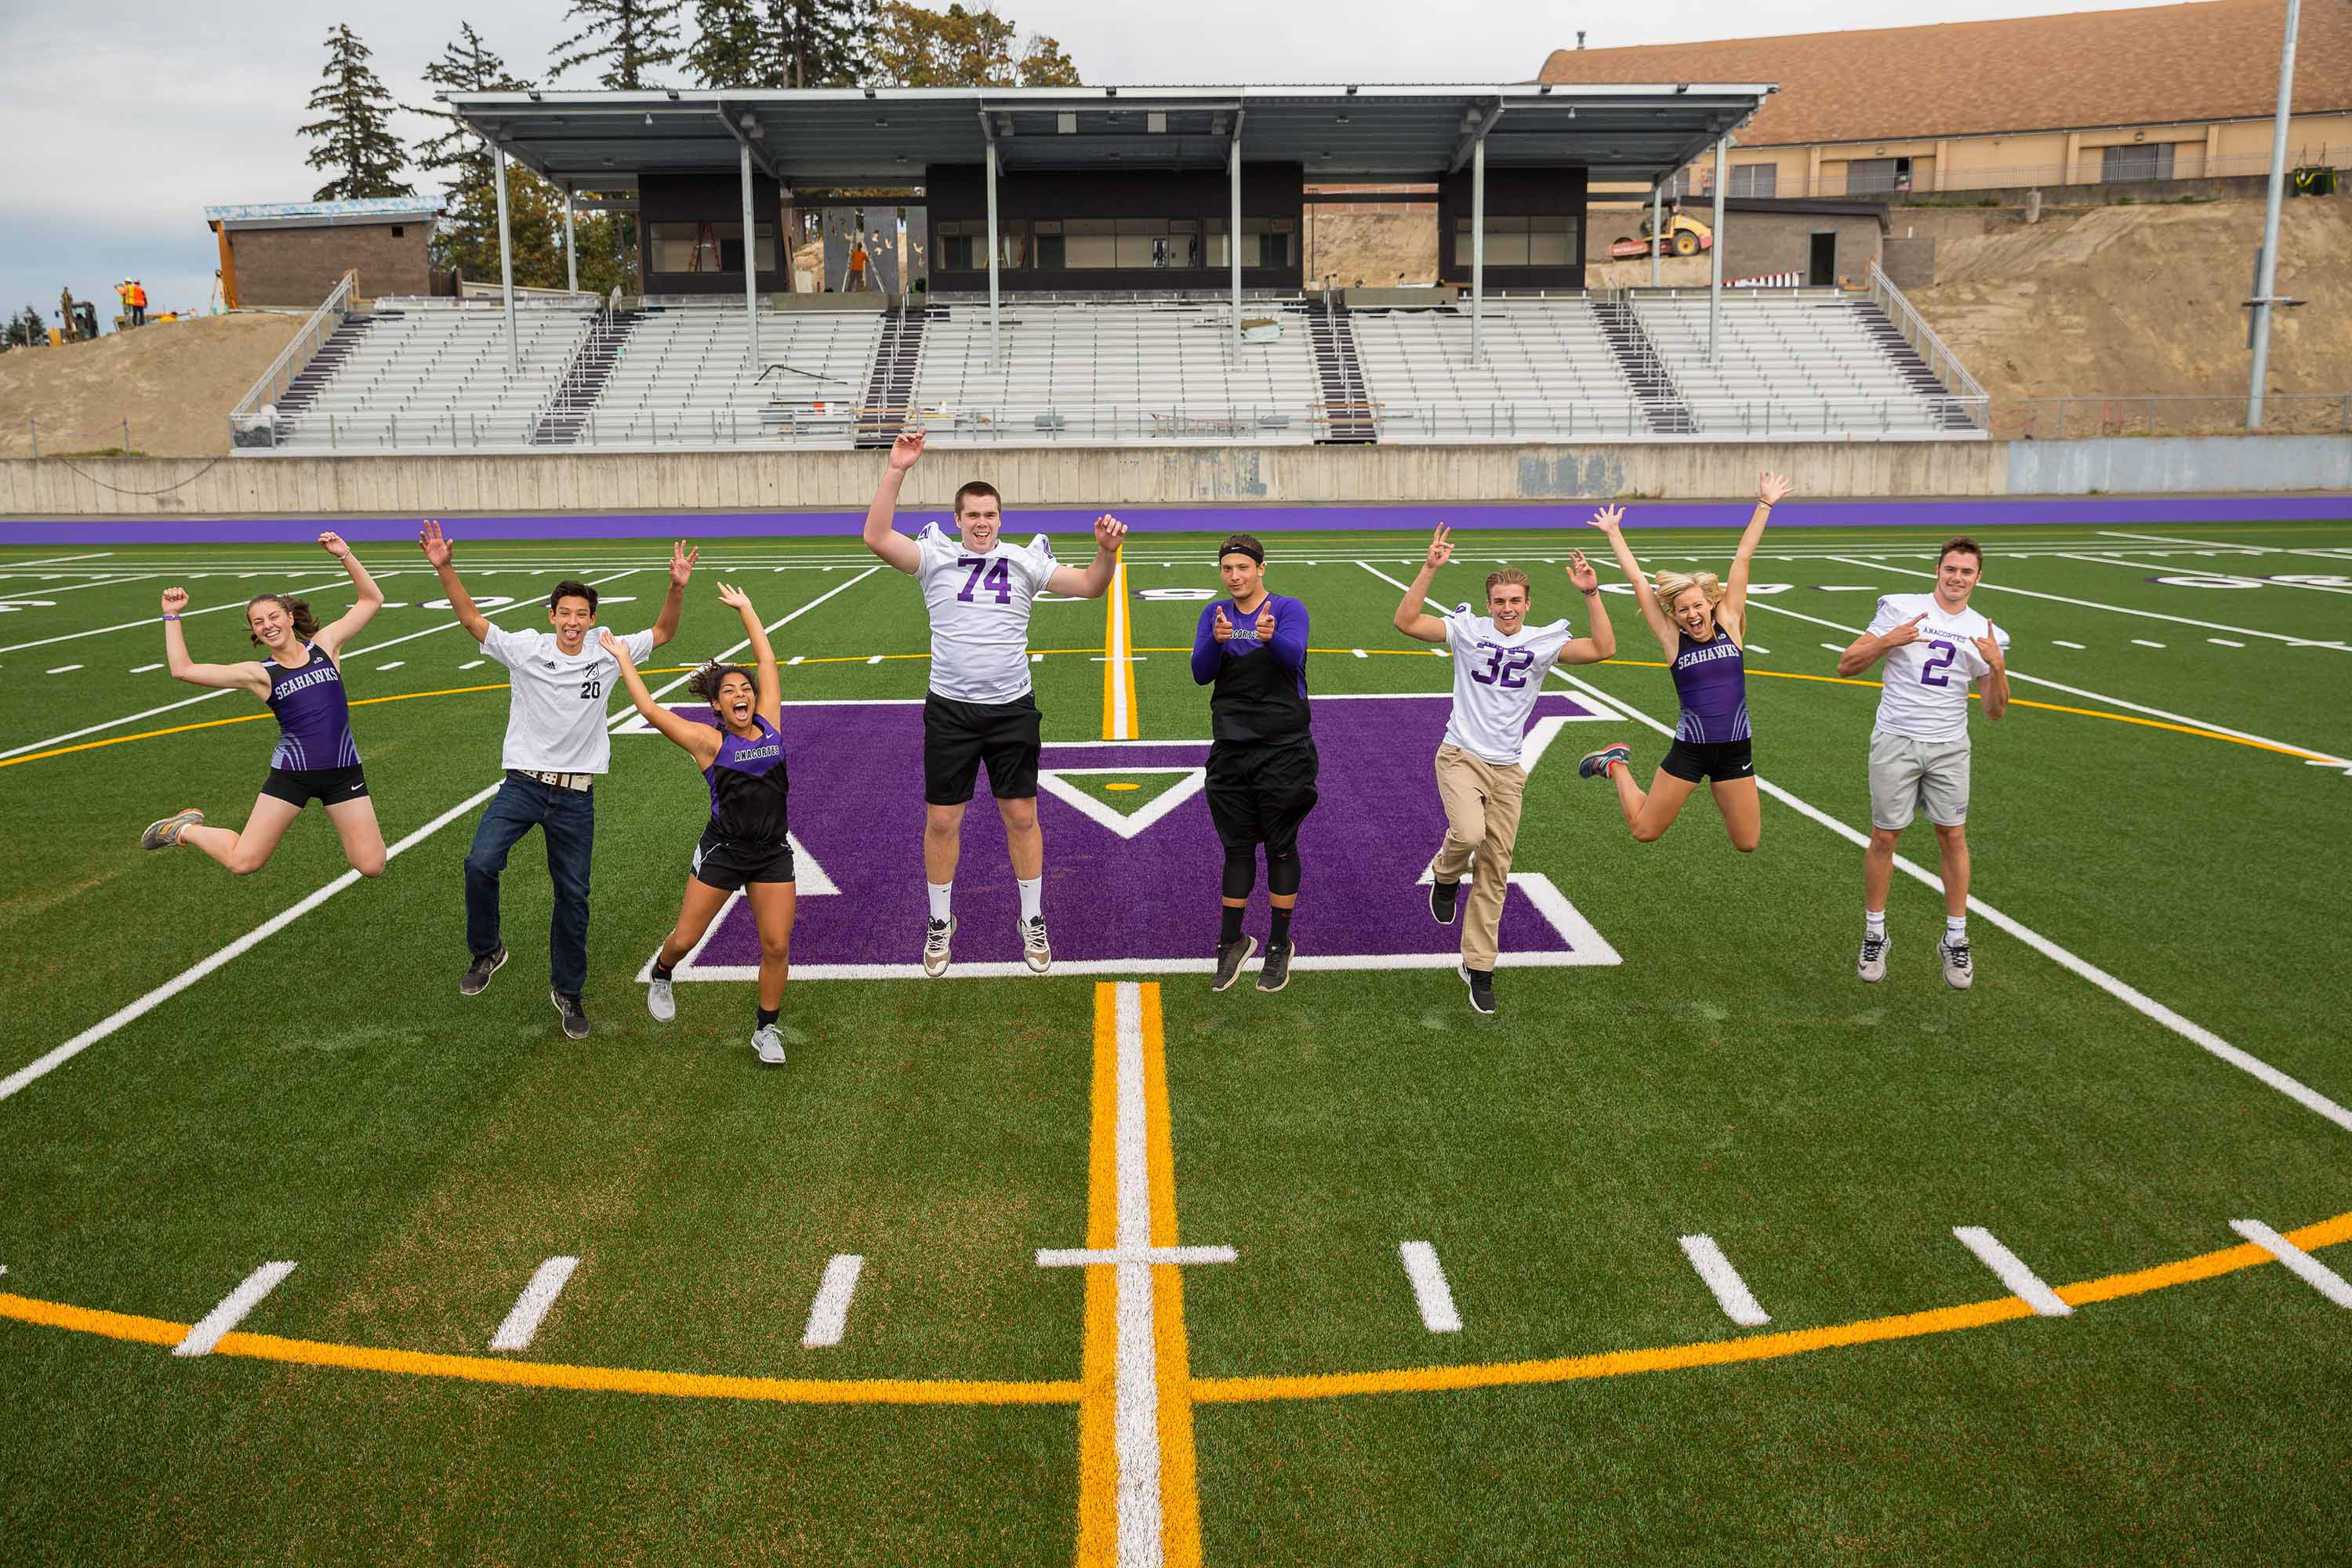 Students jumping on the football field.